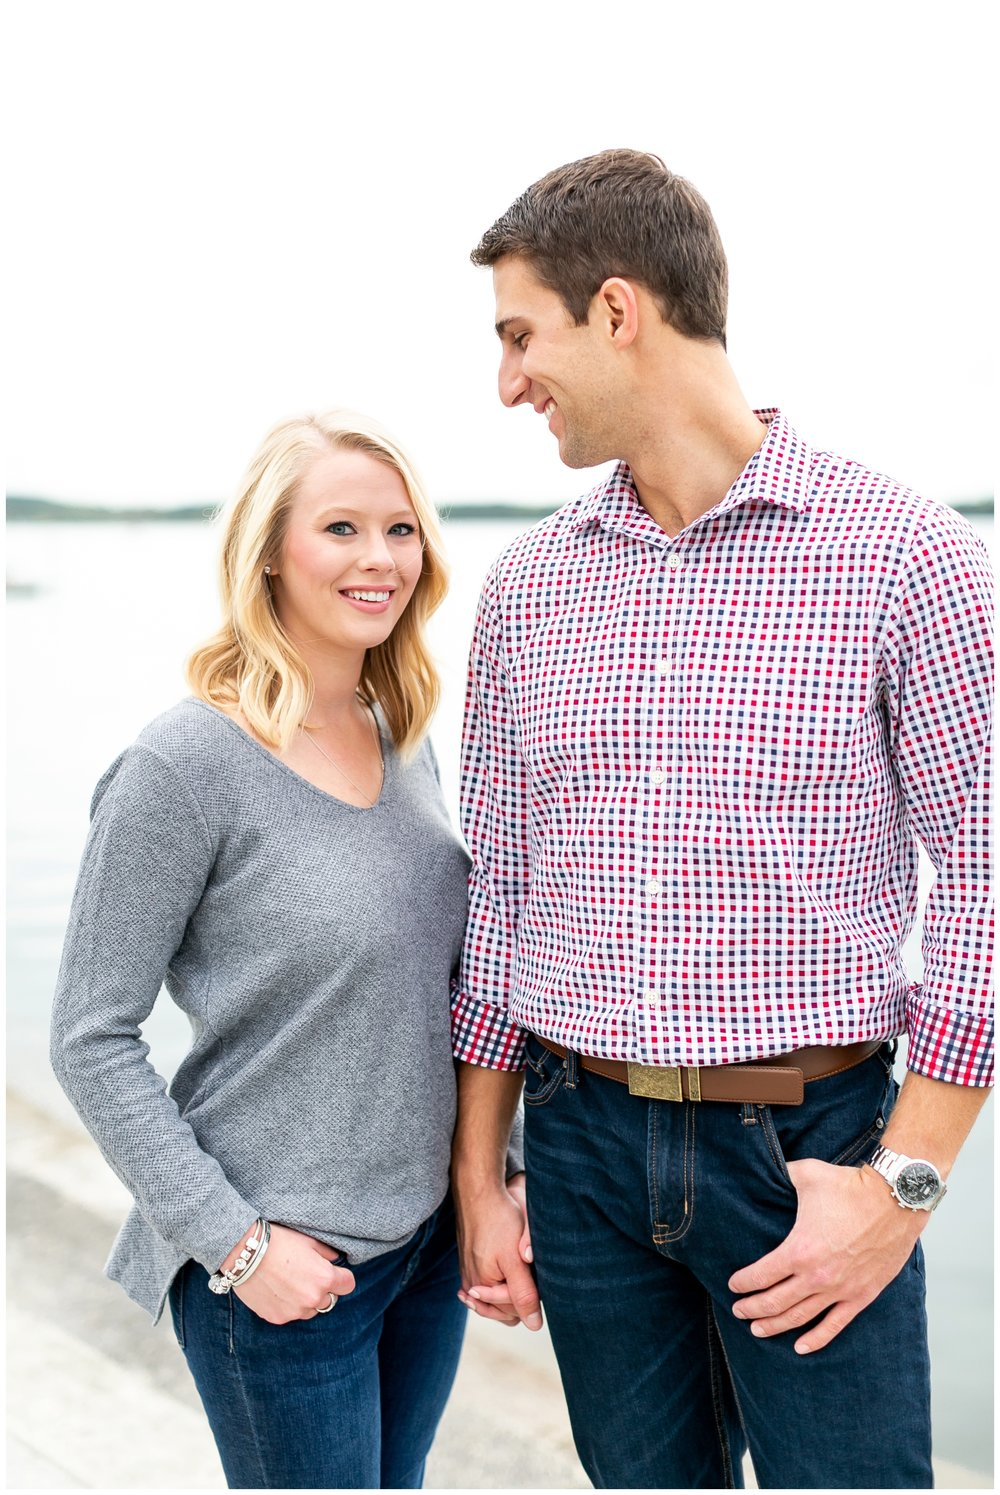 Downtown_madison_wisconsin_engagement_session_1516.jpg